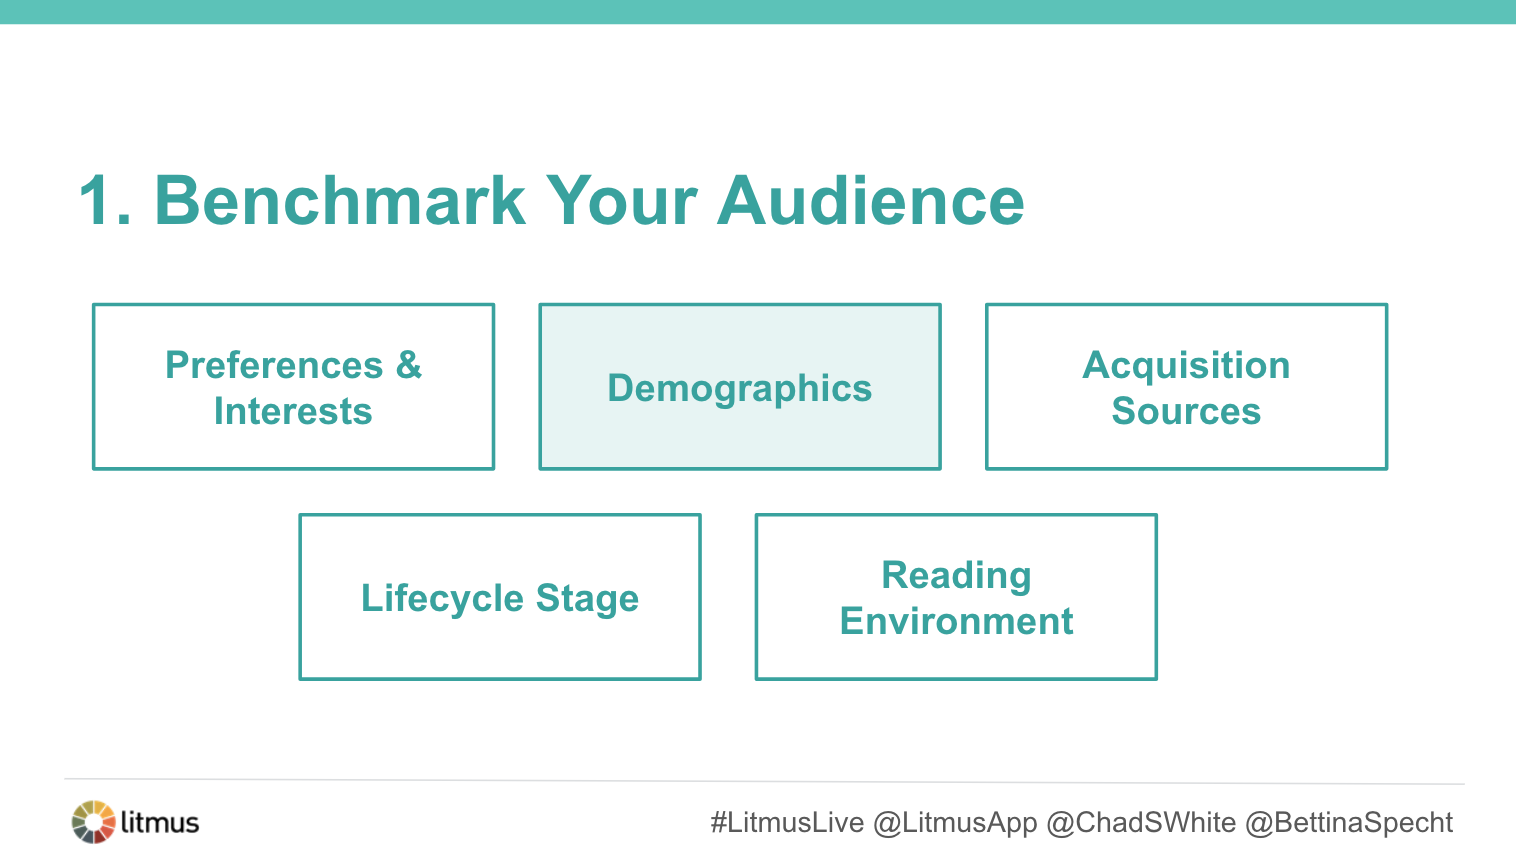 Elements of an Audience Assessment